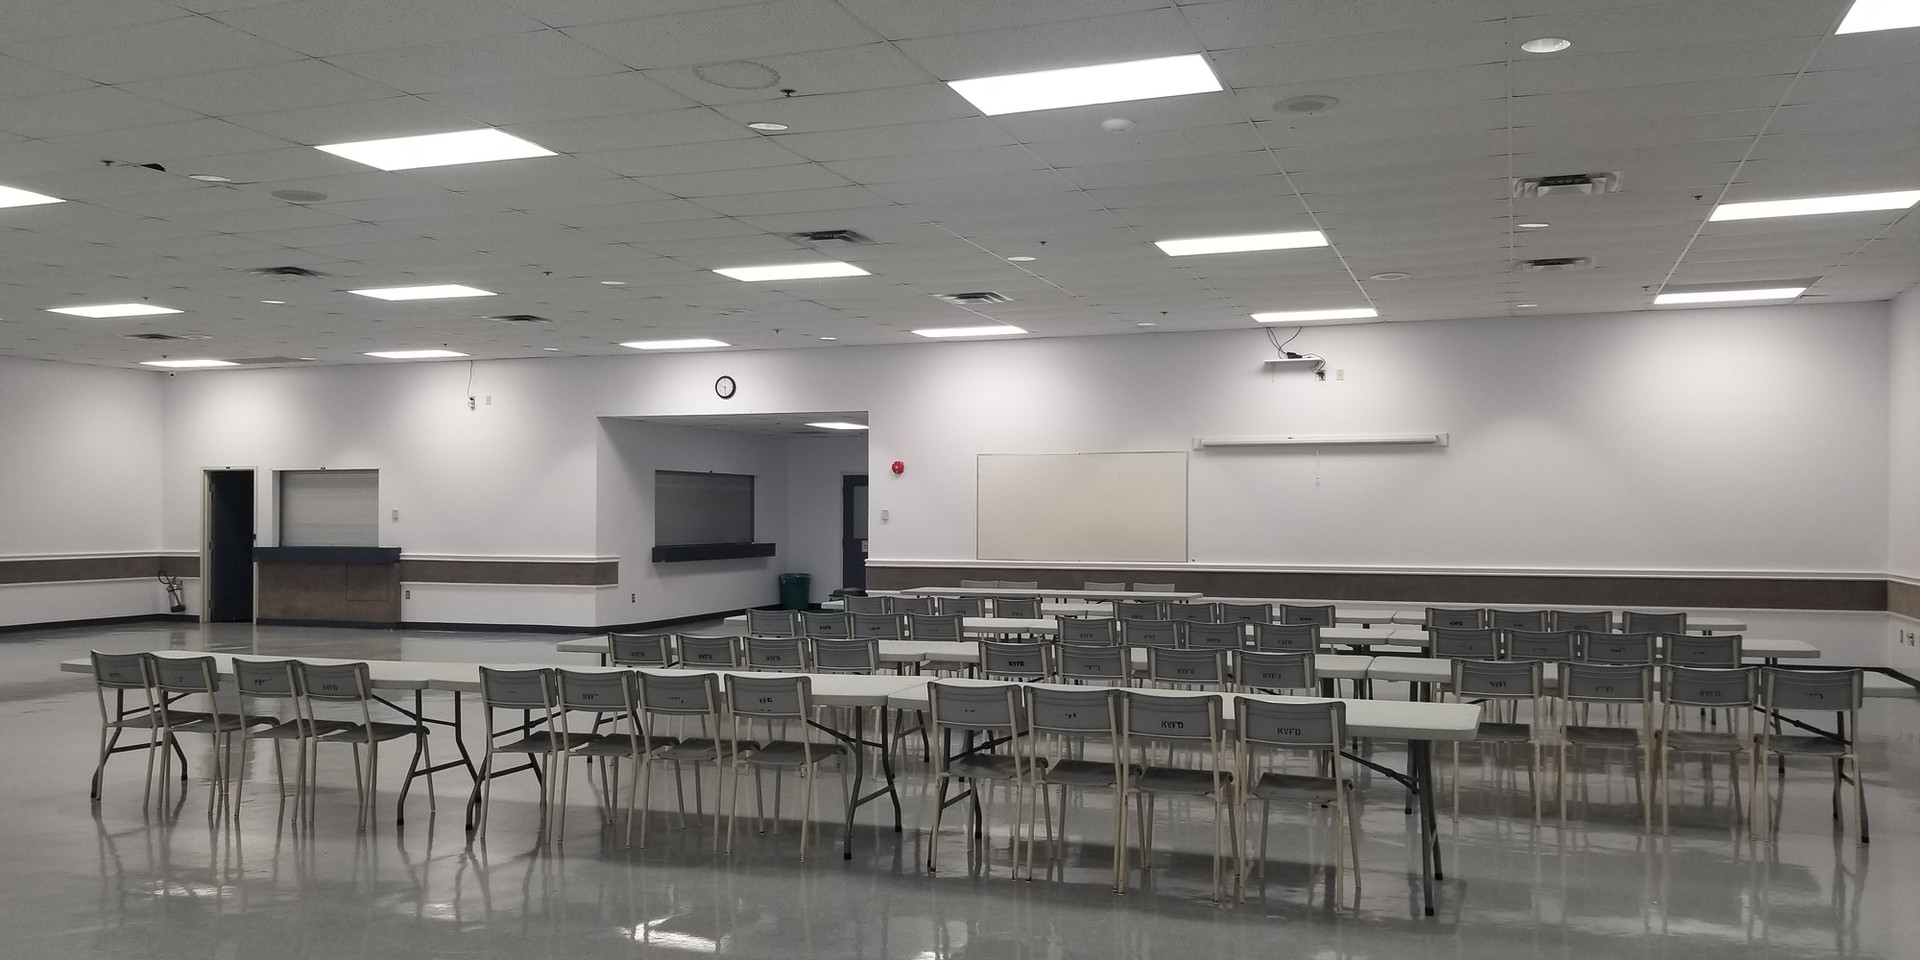 Auditorium set up for smaller group